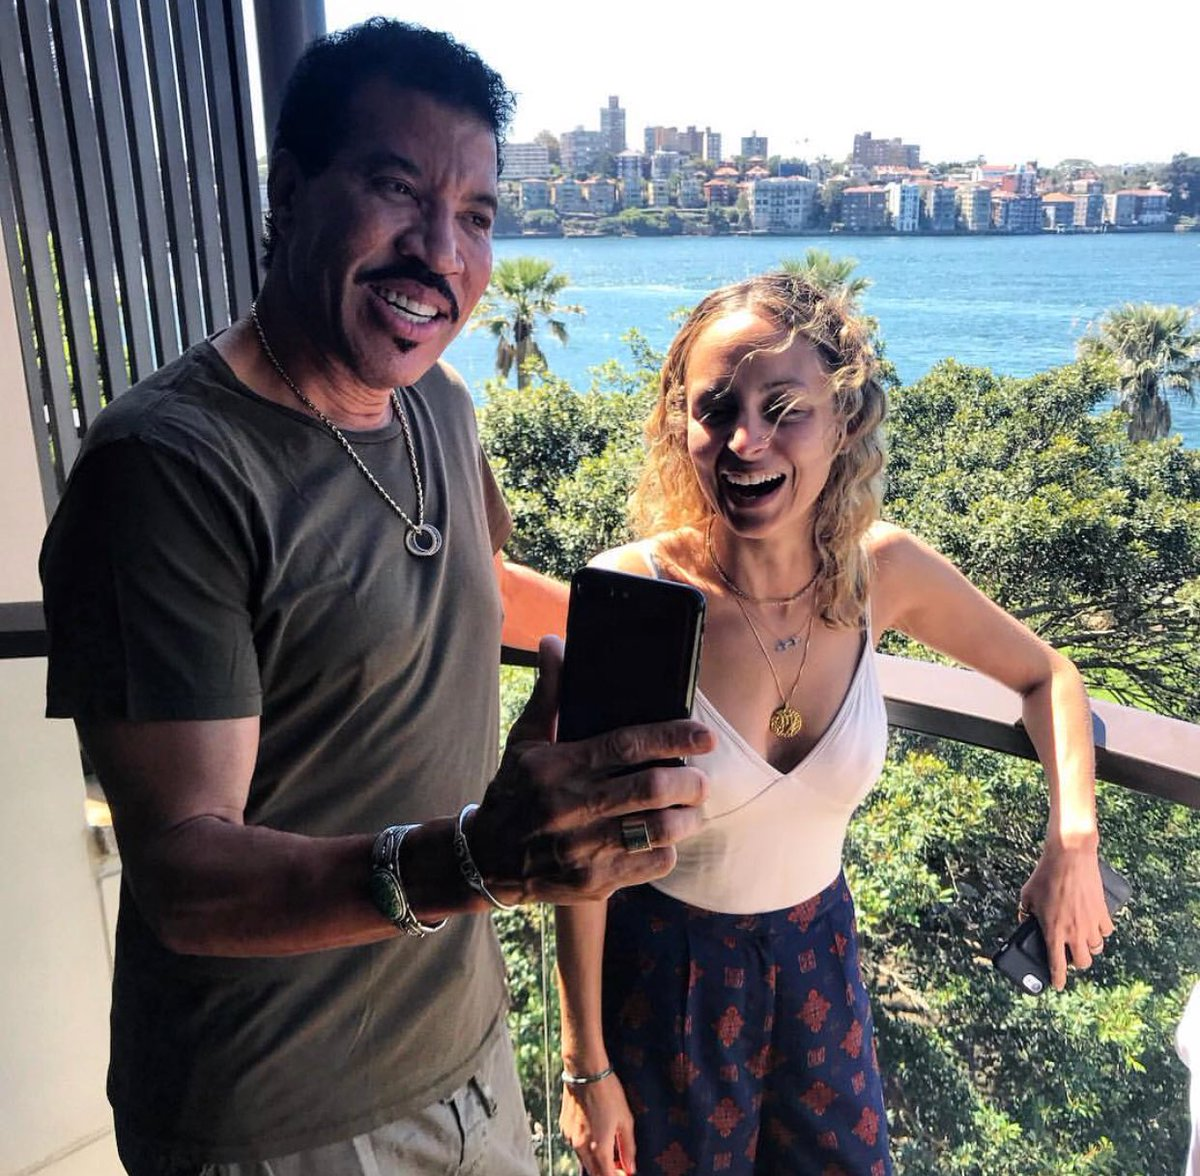 RT @LionelRichie: Family time down under. It's always fun & laughter with @nicolerichie ❤️ ???????? https://t.co/8zY1JbcyAF